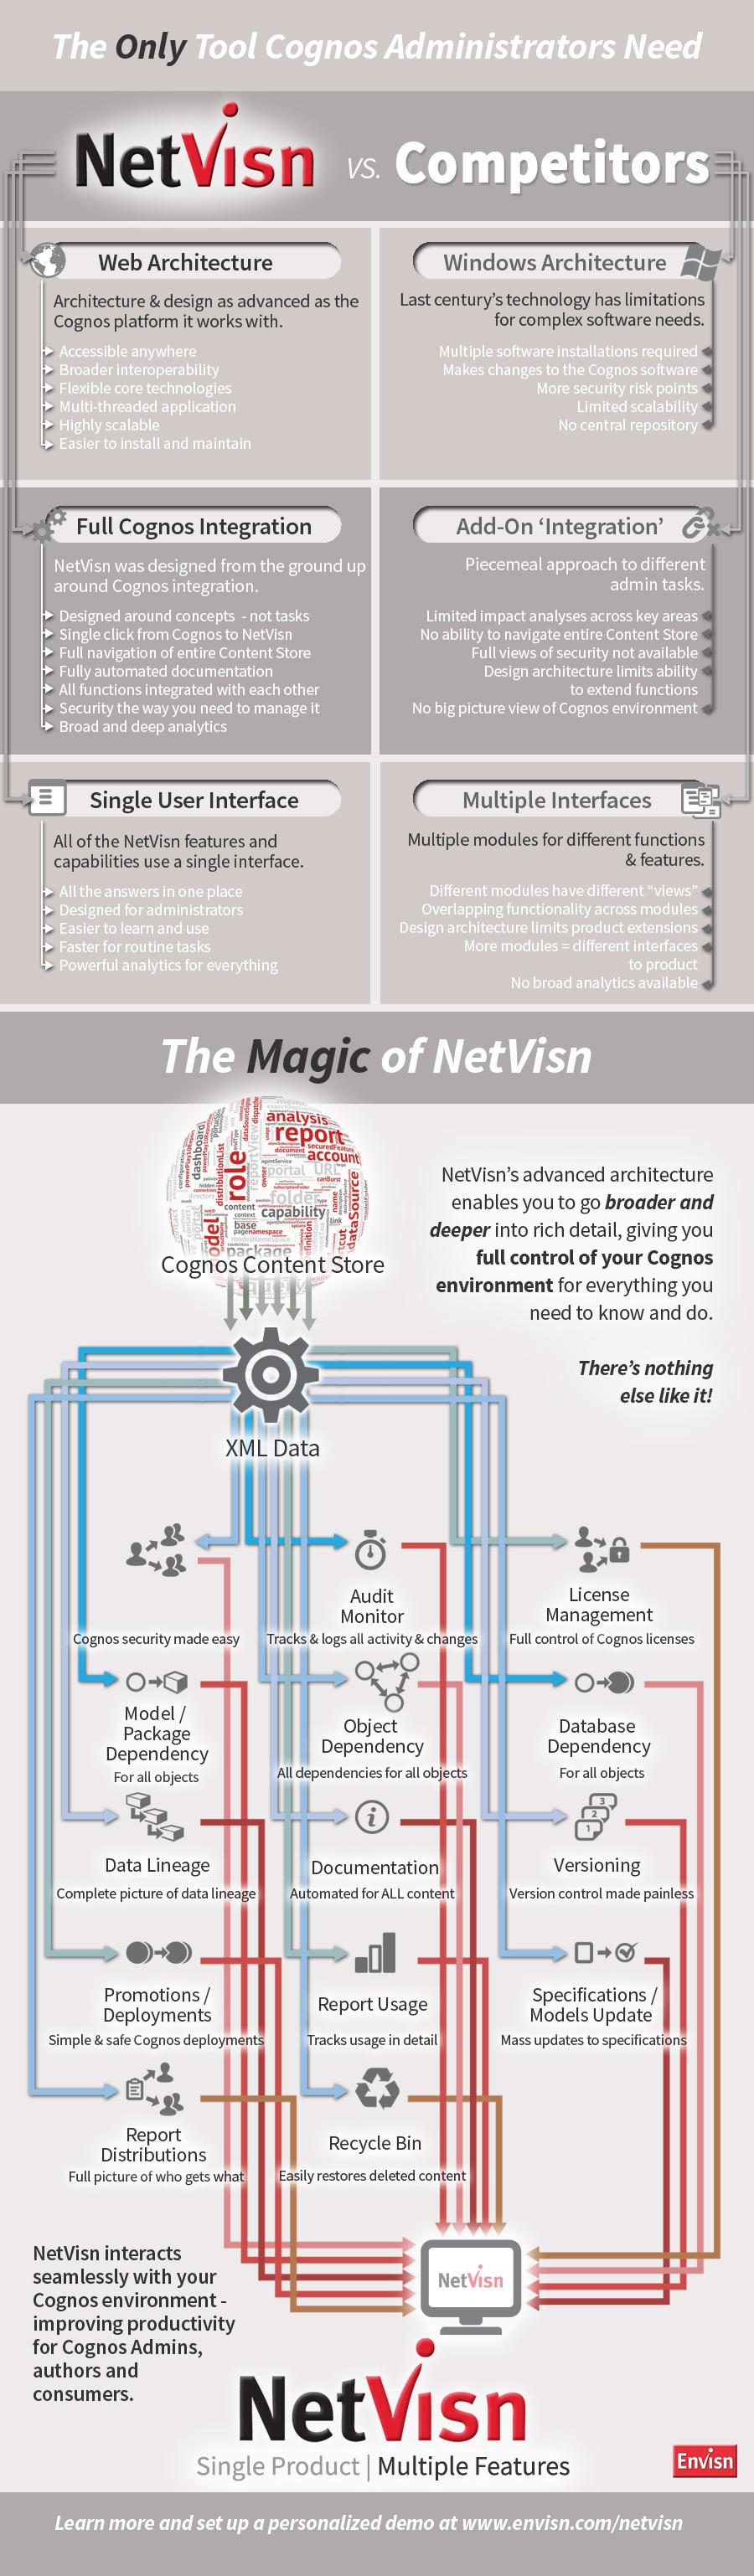 Compare Netvisn, the only tool cognos administrators need